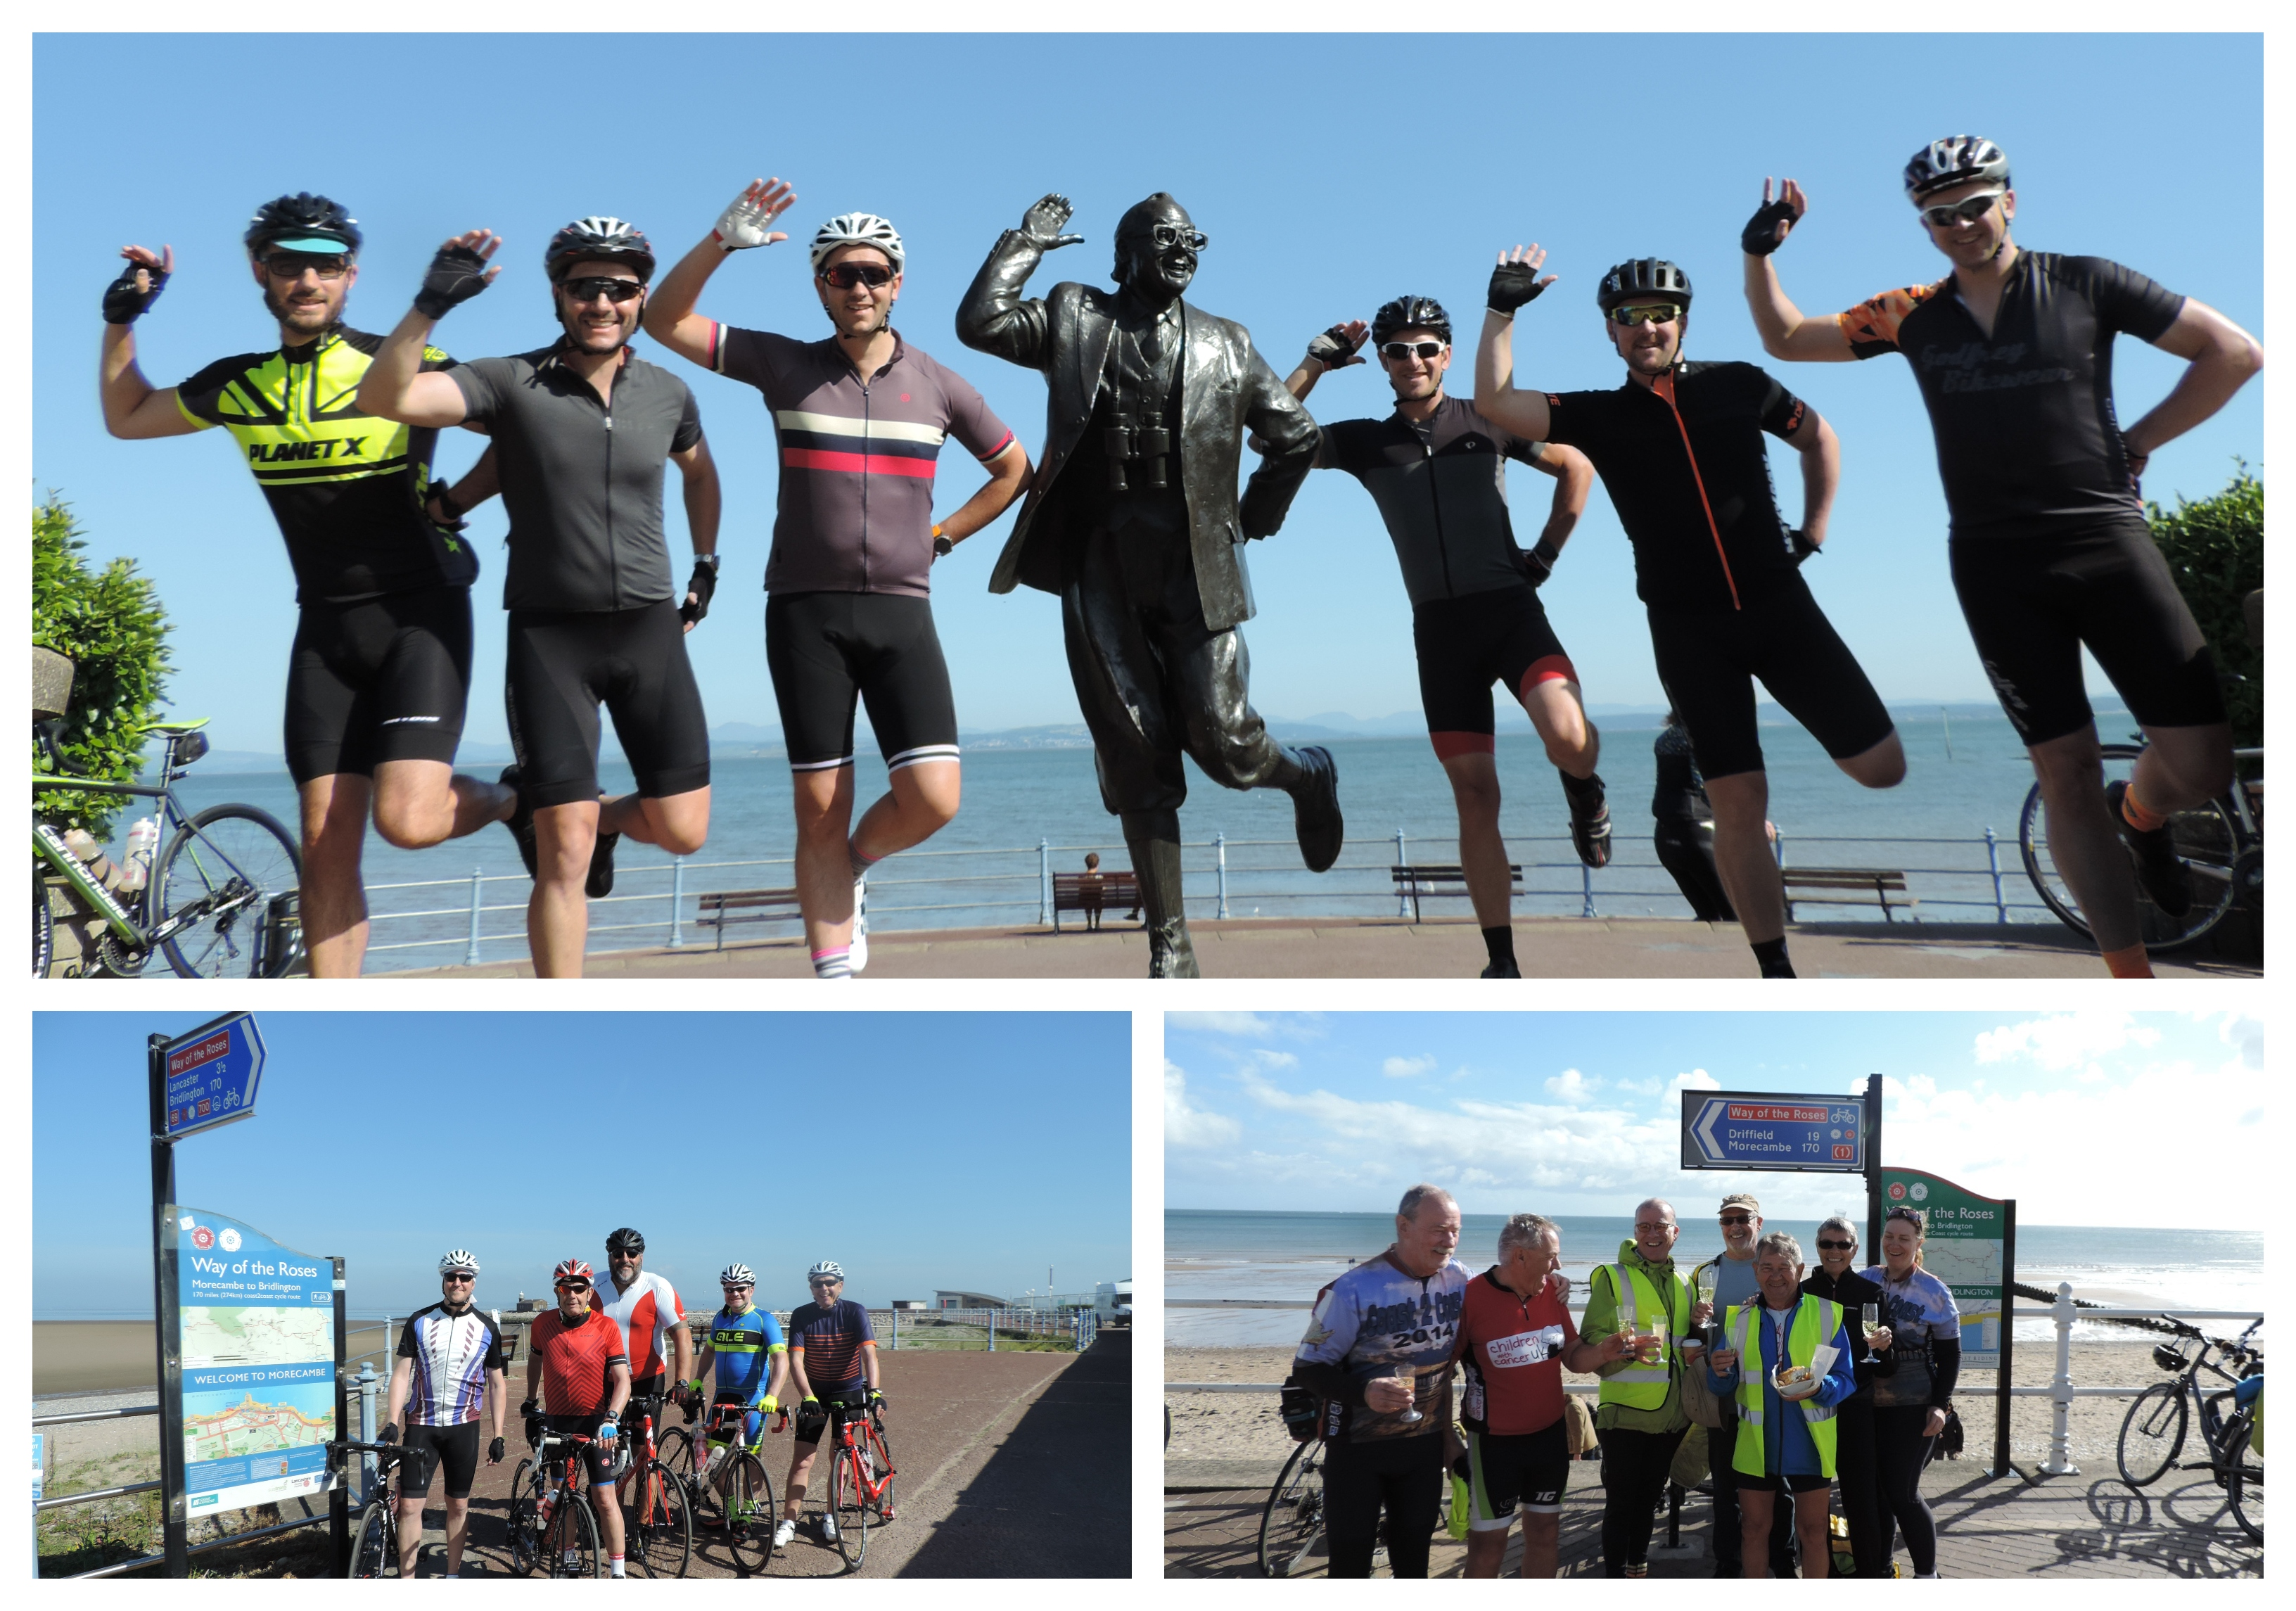 Collage of the Way of the Roses cycling tour with different groups of cyclists at the beginning and finsih of the tour